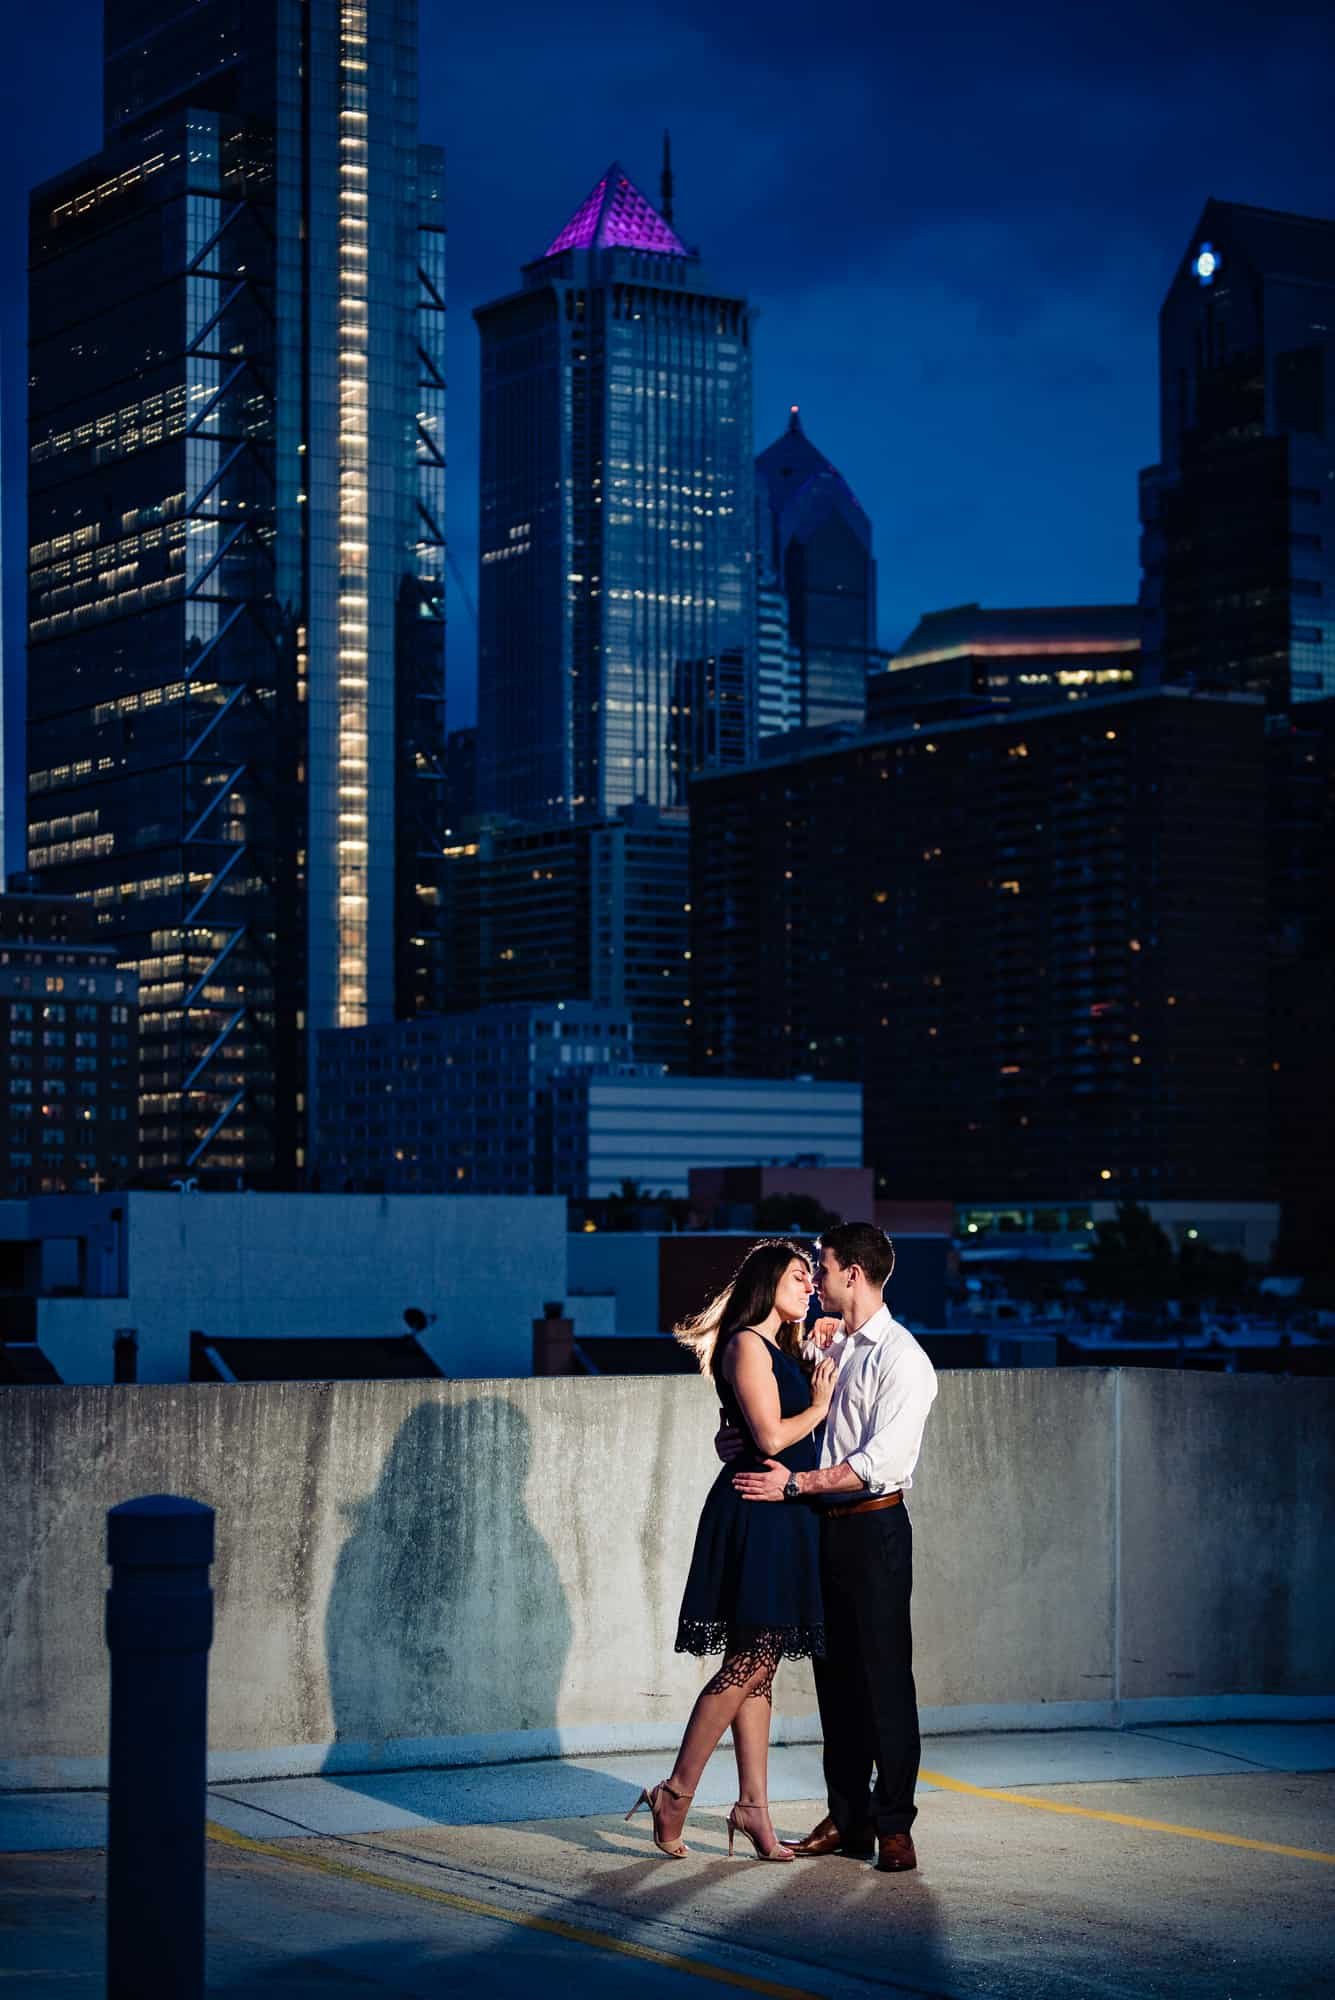 couple kissing on rooftop at night